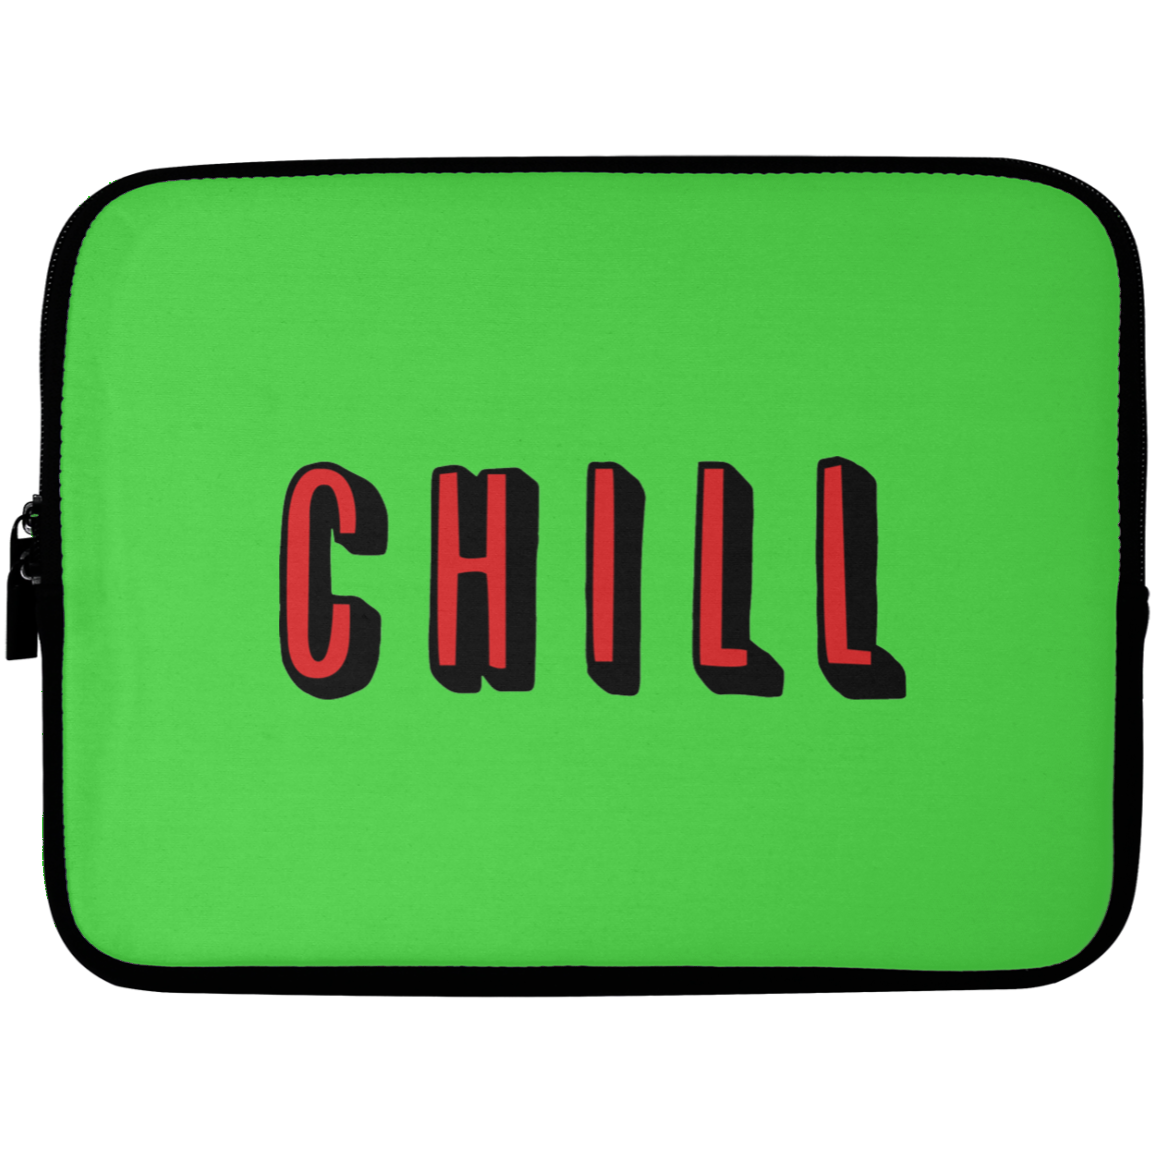 CHILL Laptop Sleeve - 10 inch